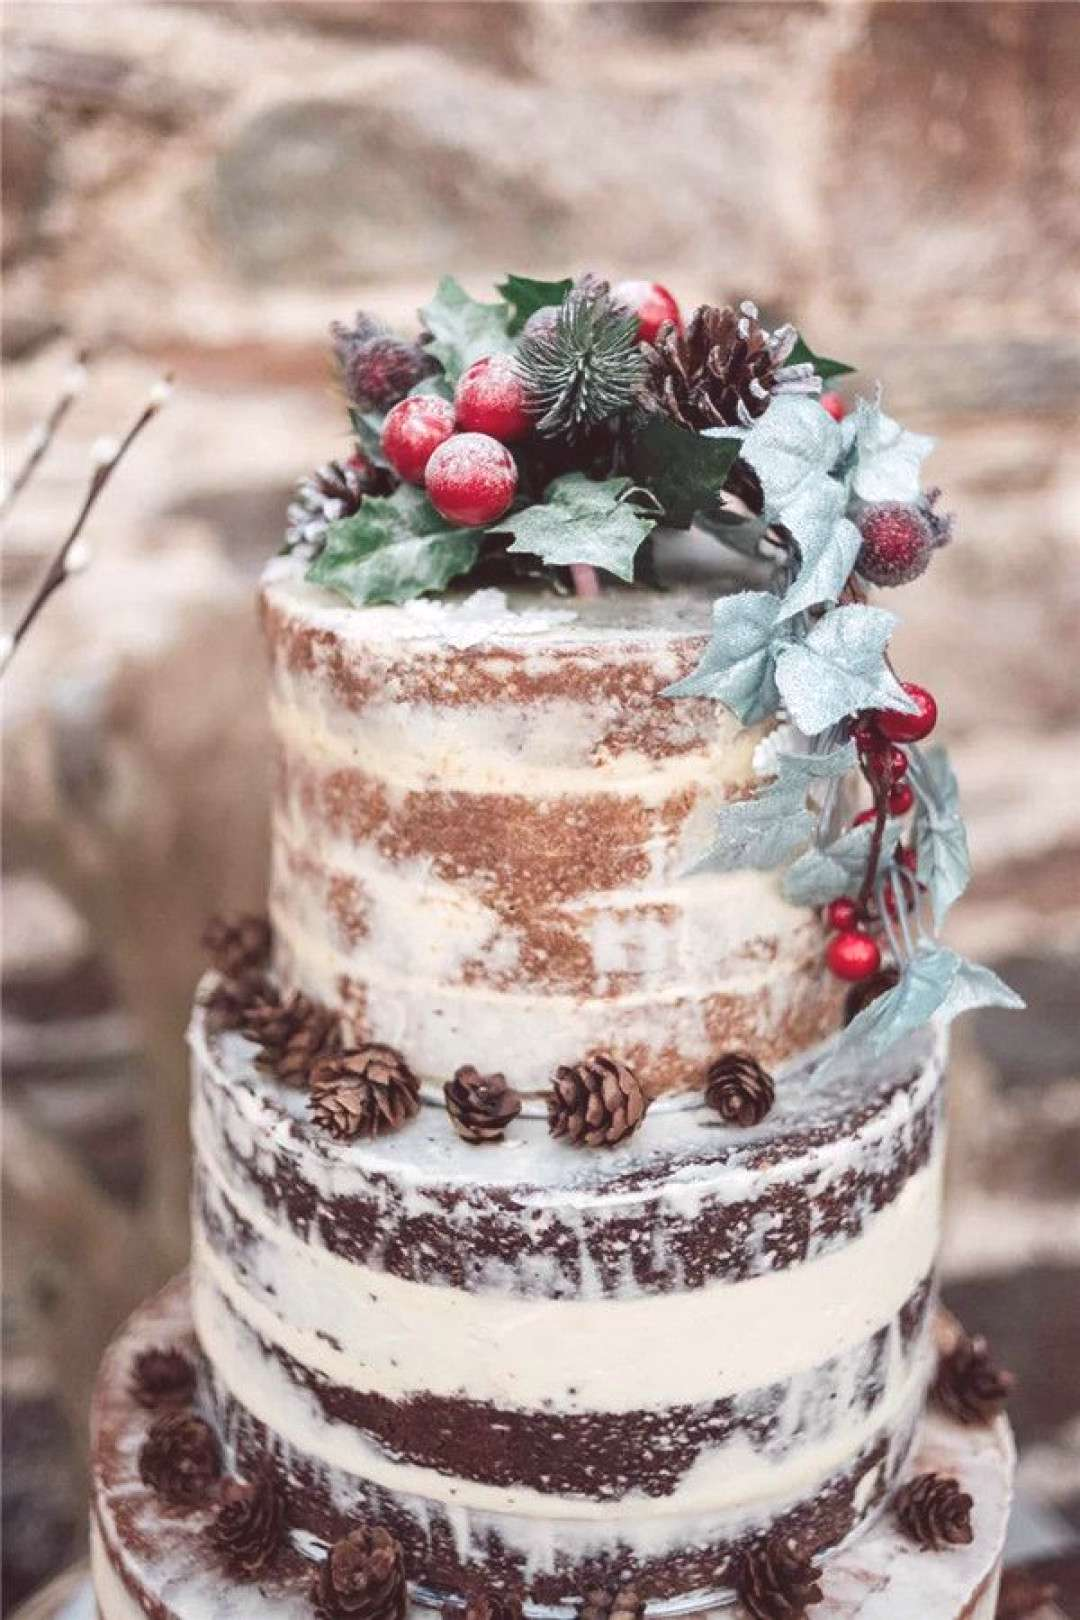 25 Winter Wedding Cake Ideas For Your Big Day 25 Winter Wedding Cake Ideas For Your Big Day#Cakes